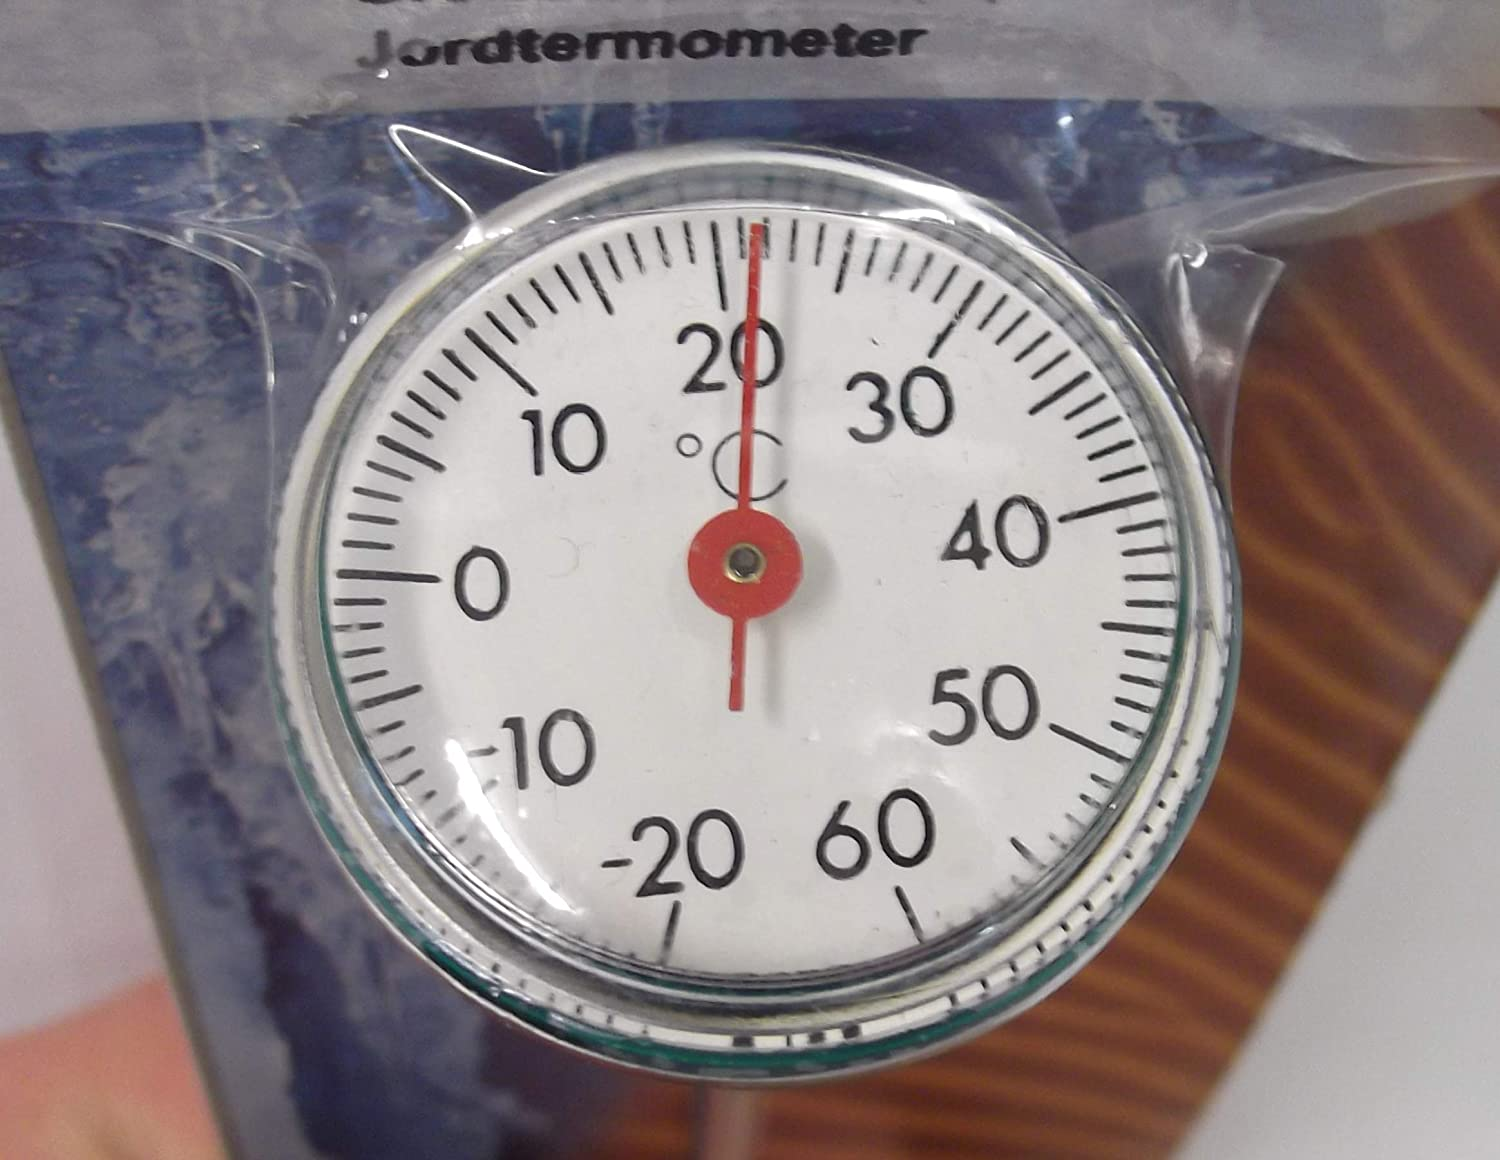 Soil thermometer with easy to read dial